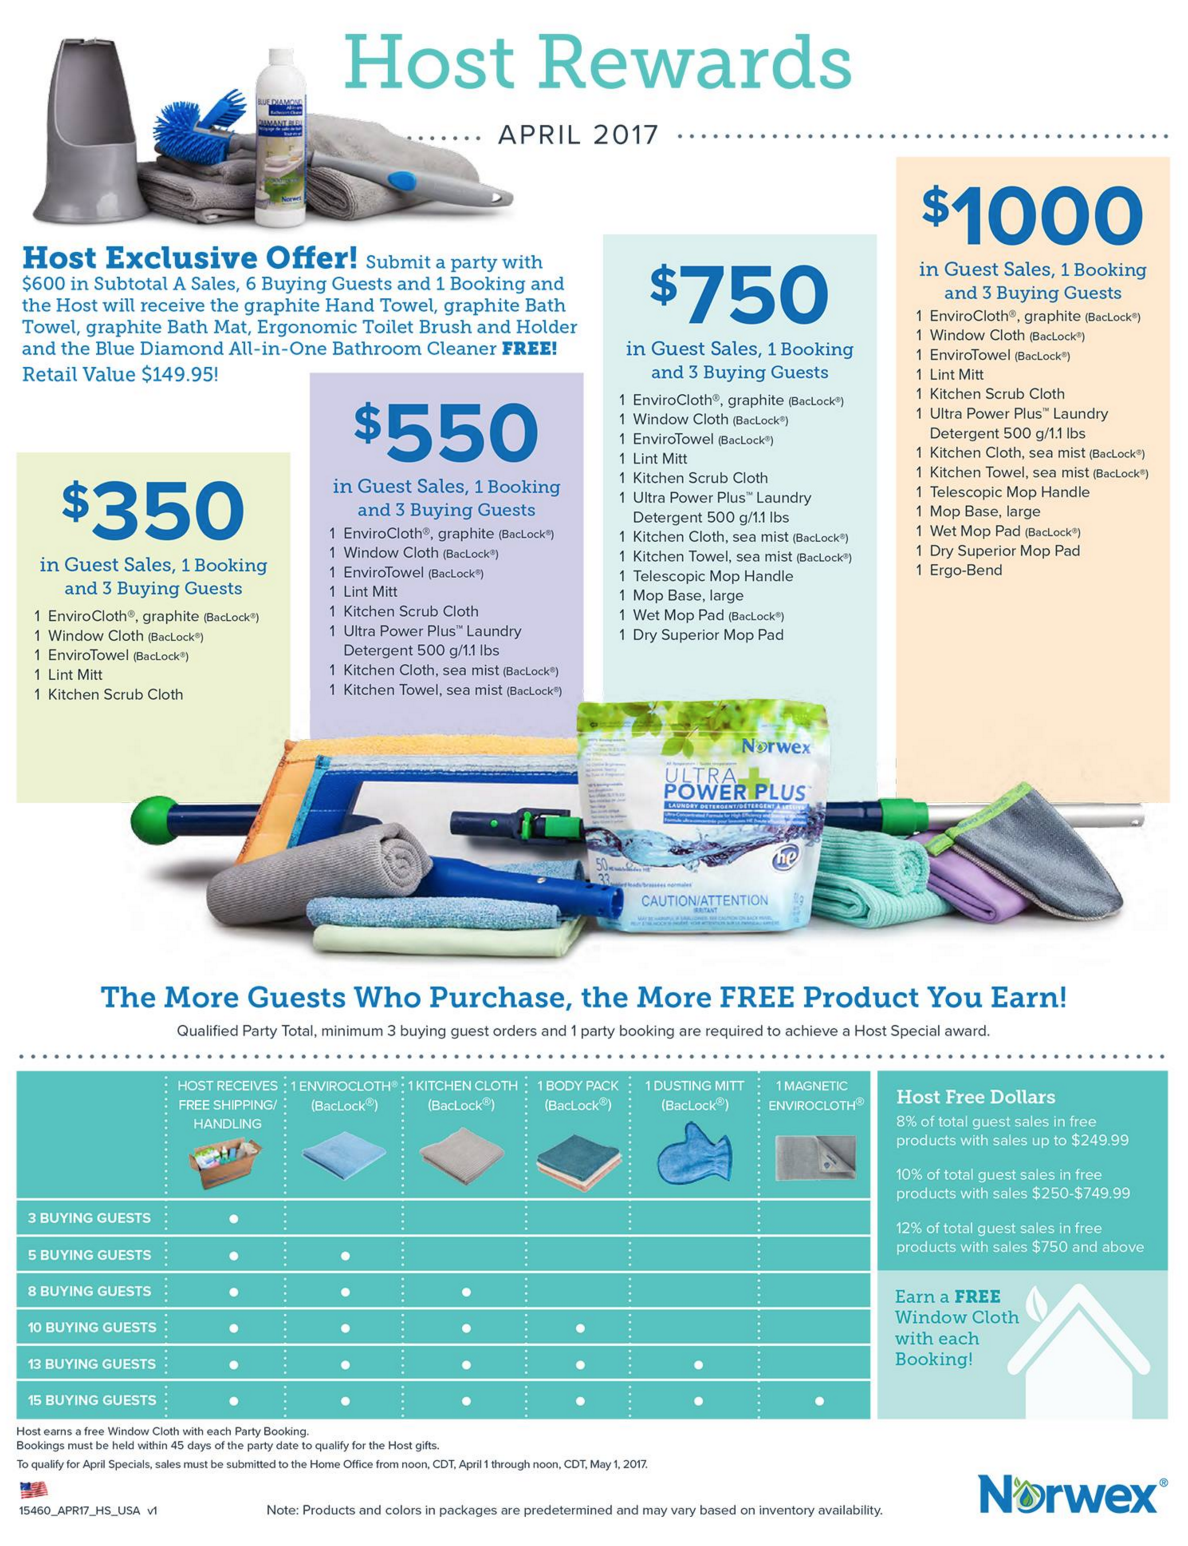 Norwex Hostess Specials and Customer Sales for April 2017